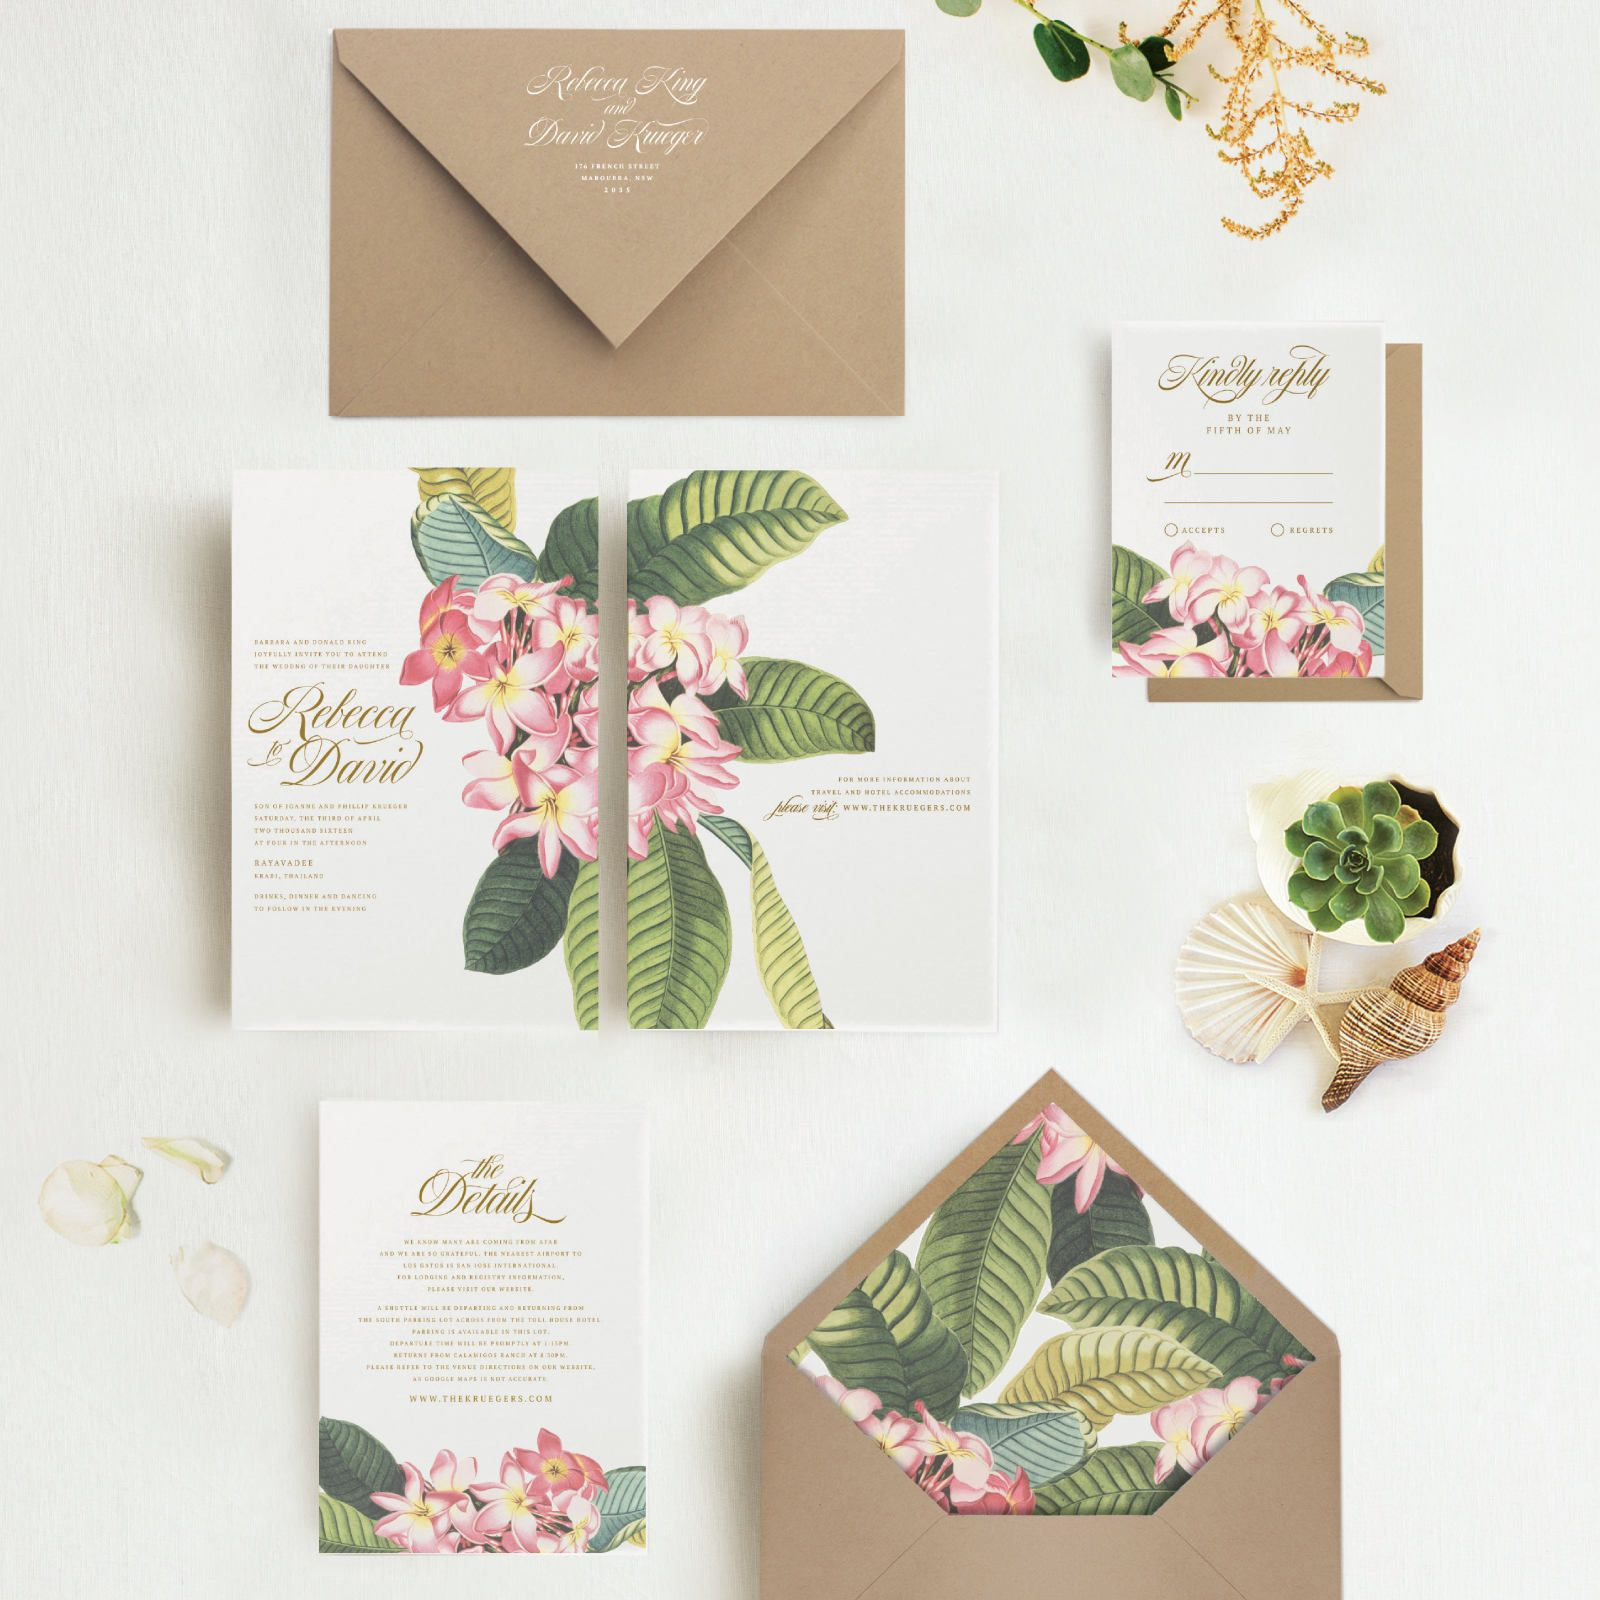 Announce Your Tropical Wedding With Our Elegant Plumeria Invitation